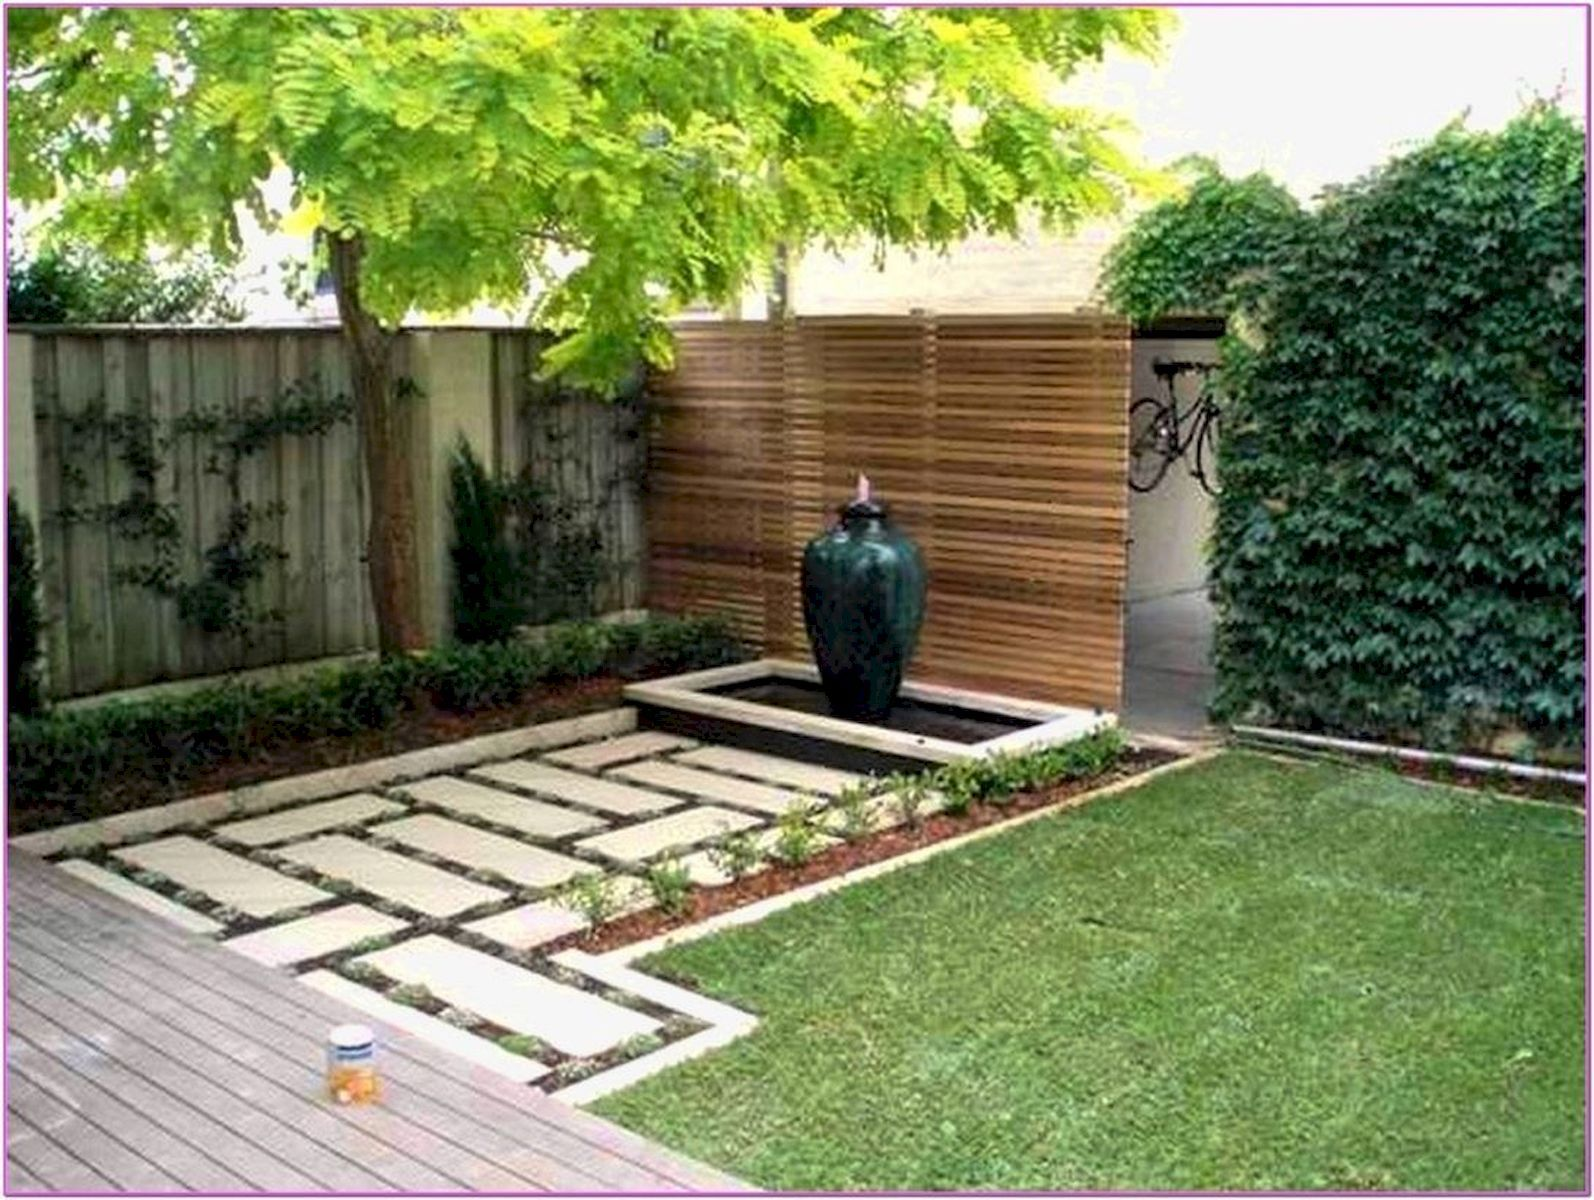 52 Most Creative Cheap Backyard Patio Ideas On A Budget Yellowraises Inexpensive Landscaping Large Backyard Landscaping Small Backyard Gardens